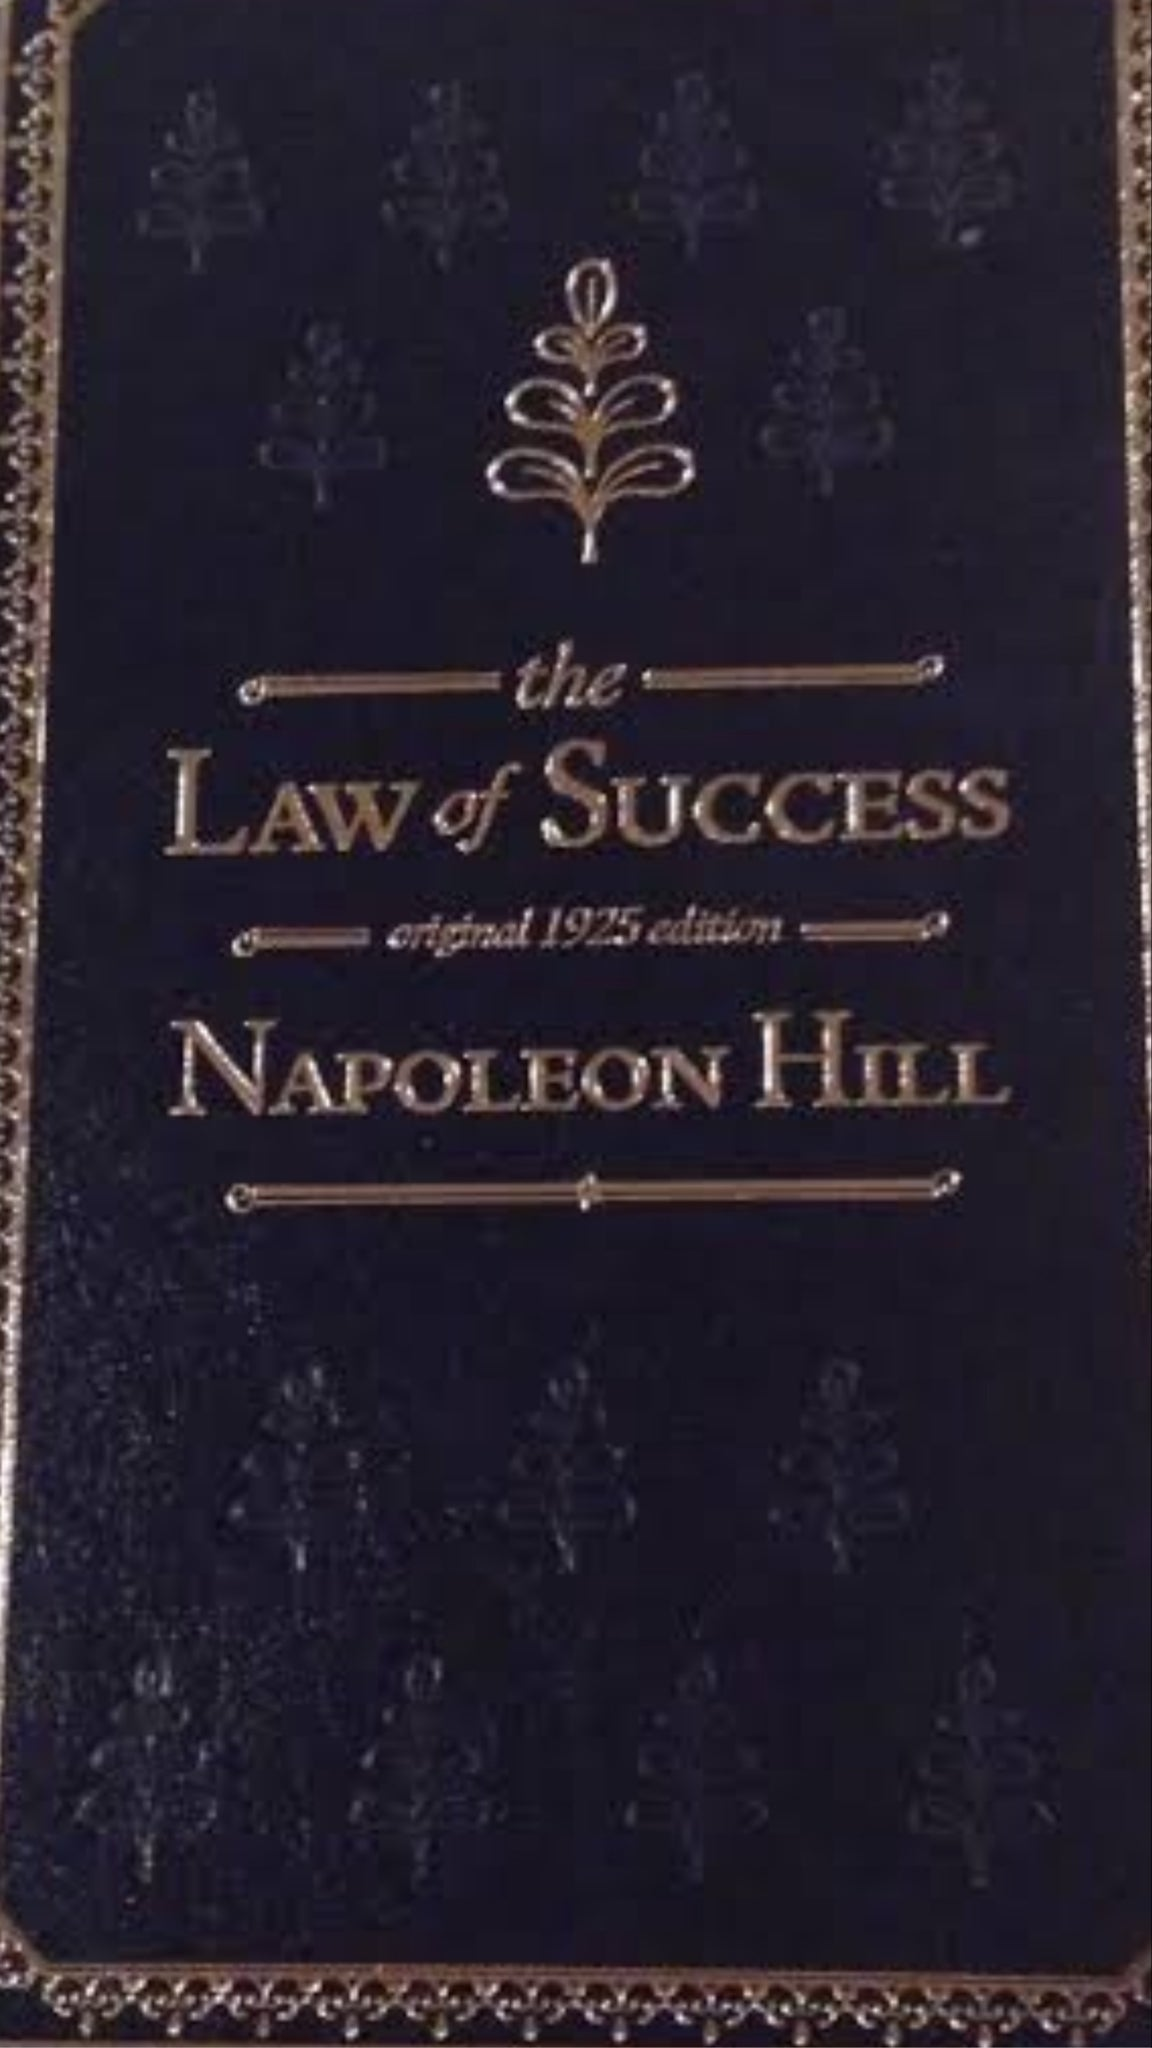 The Original Law of Success (from the 1925 manuscript)